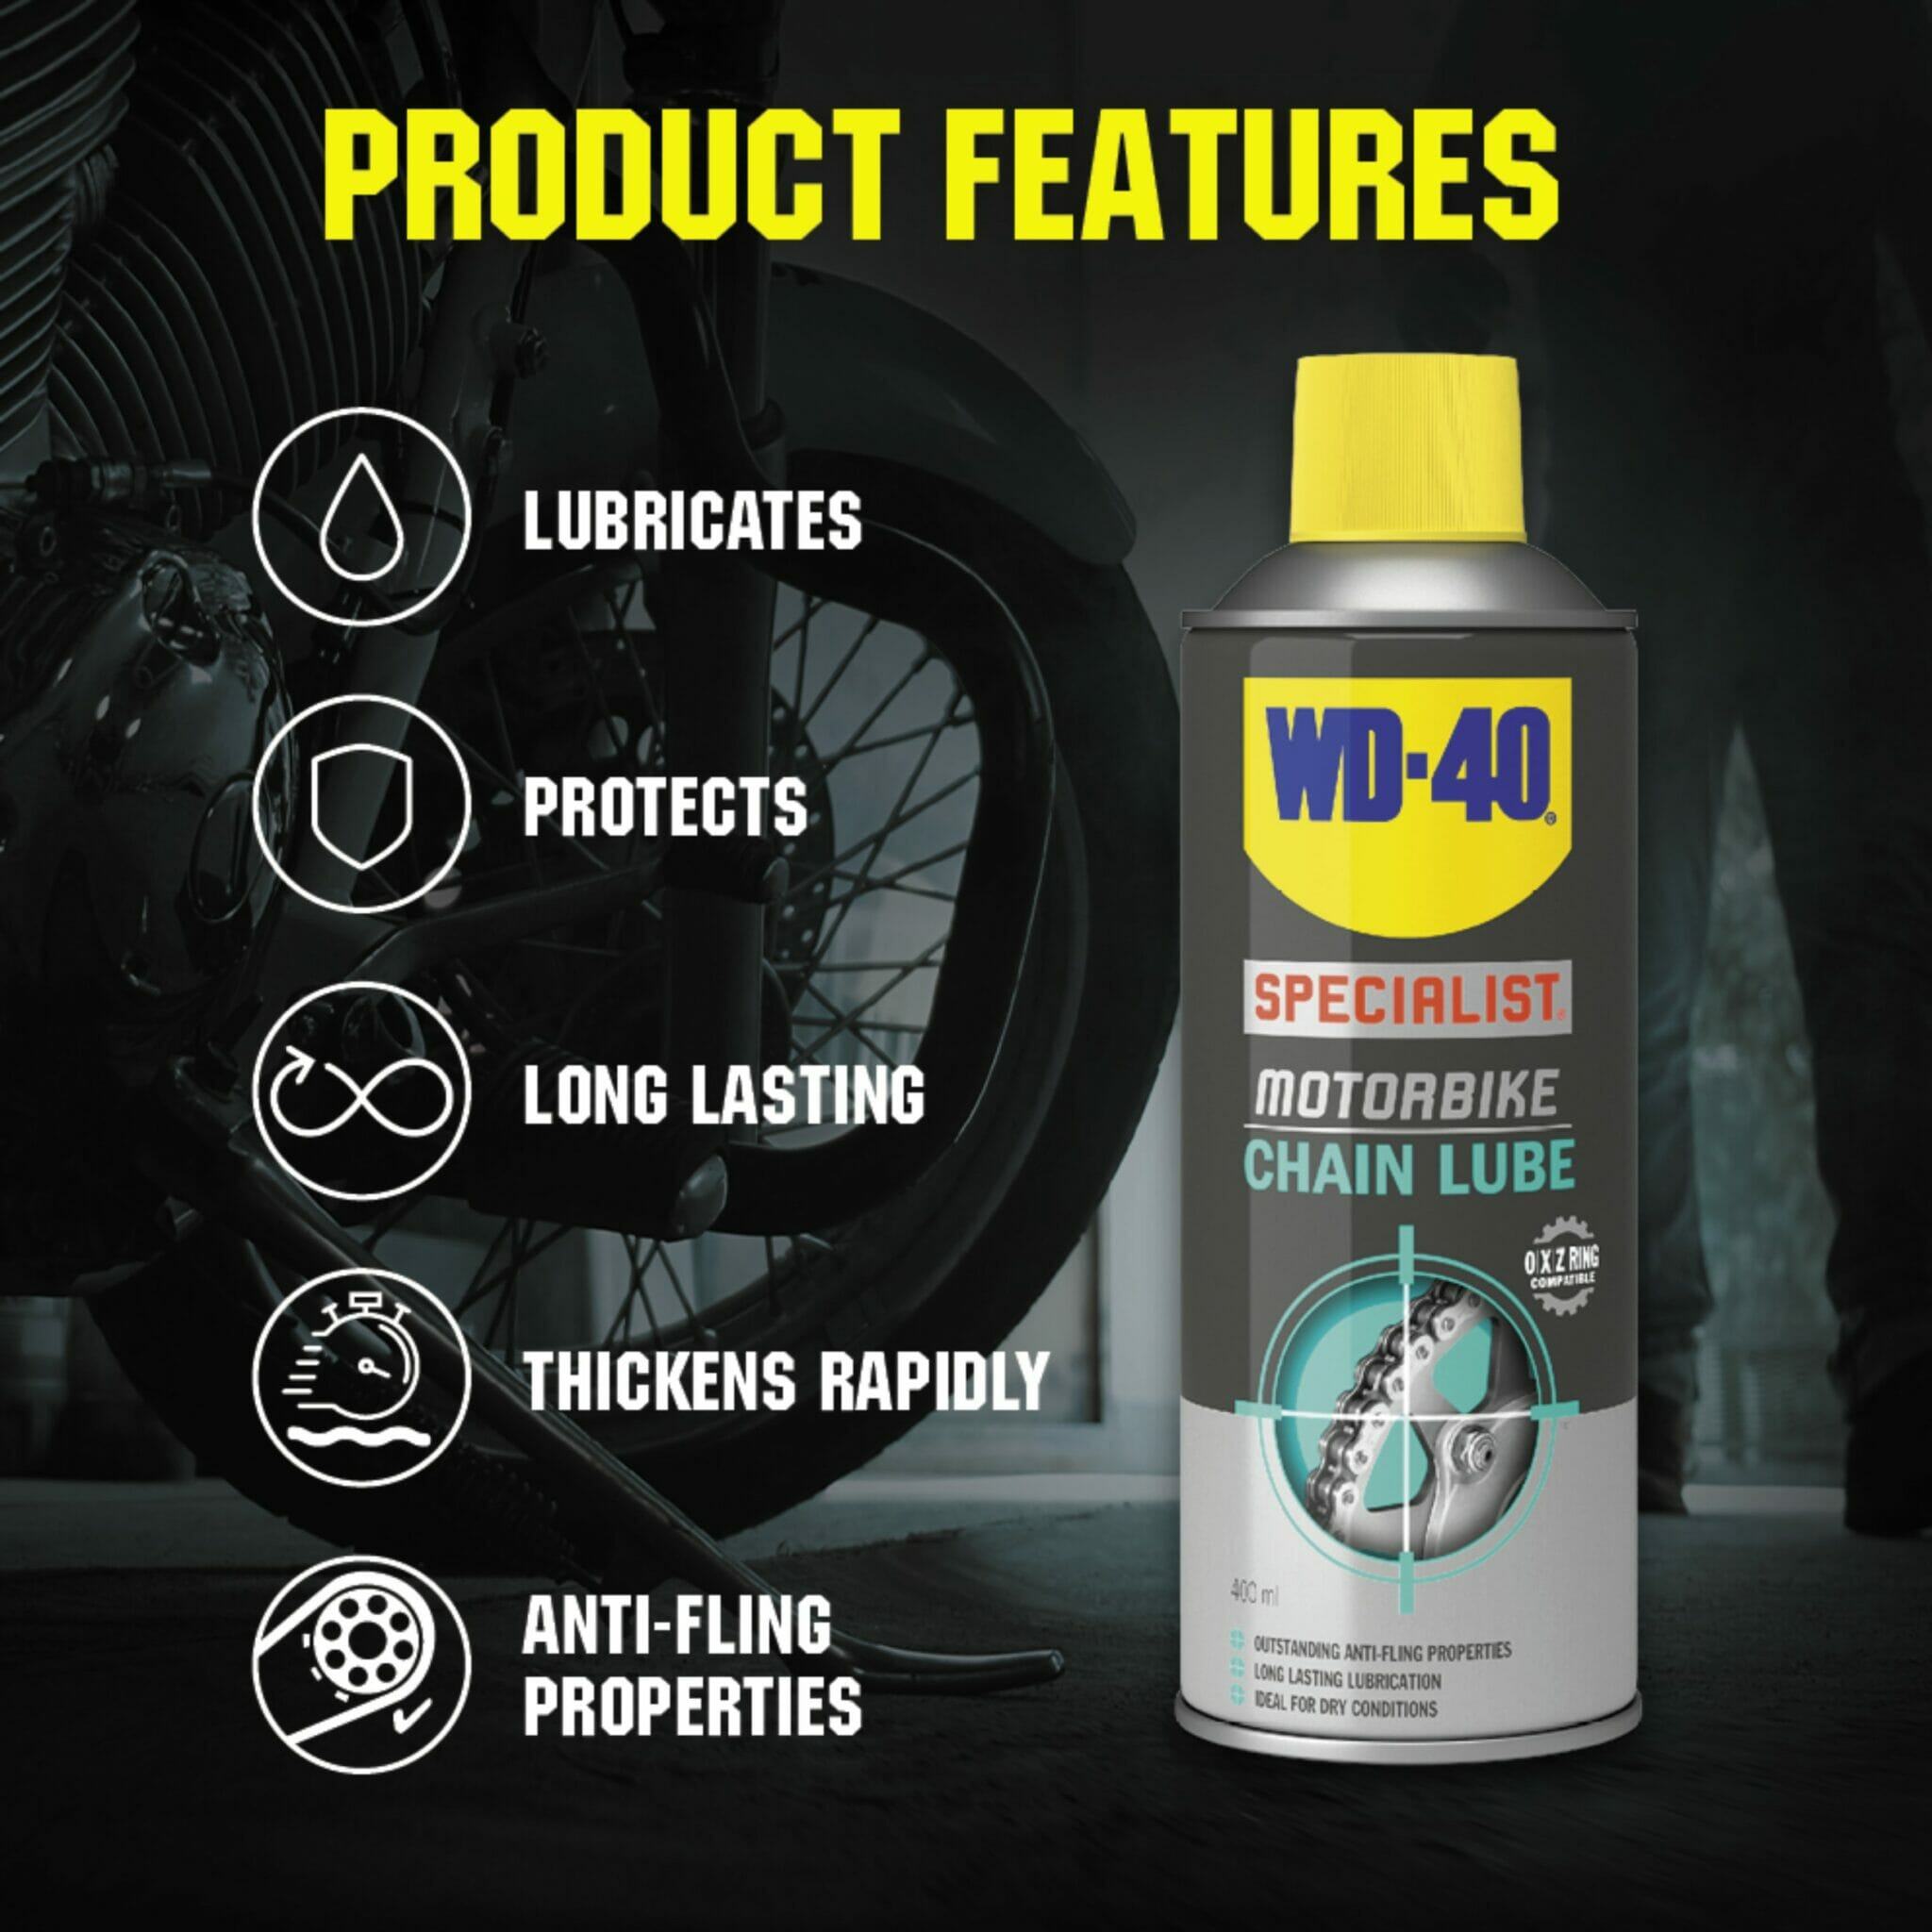 uk wd40 specialist motorbike chain lube 400ml product features lifestyle background